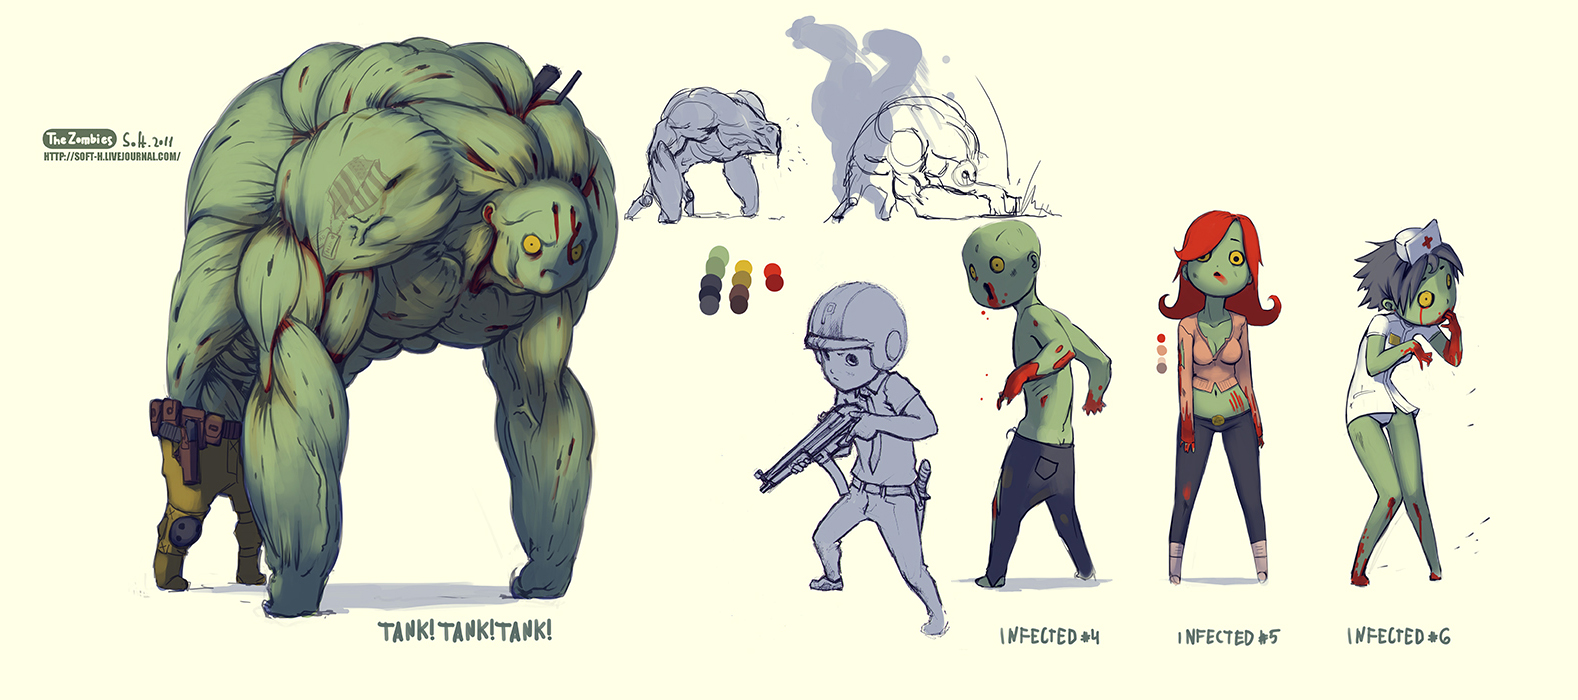 Character Design Zombie : How to carve roast unicorn monday monsters z is for zombies